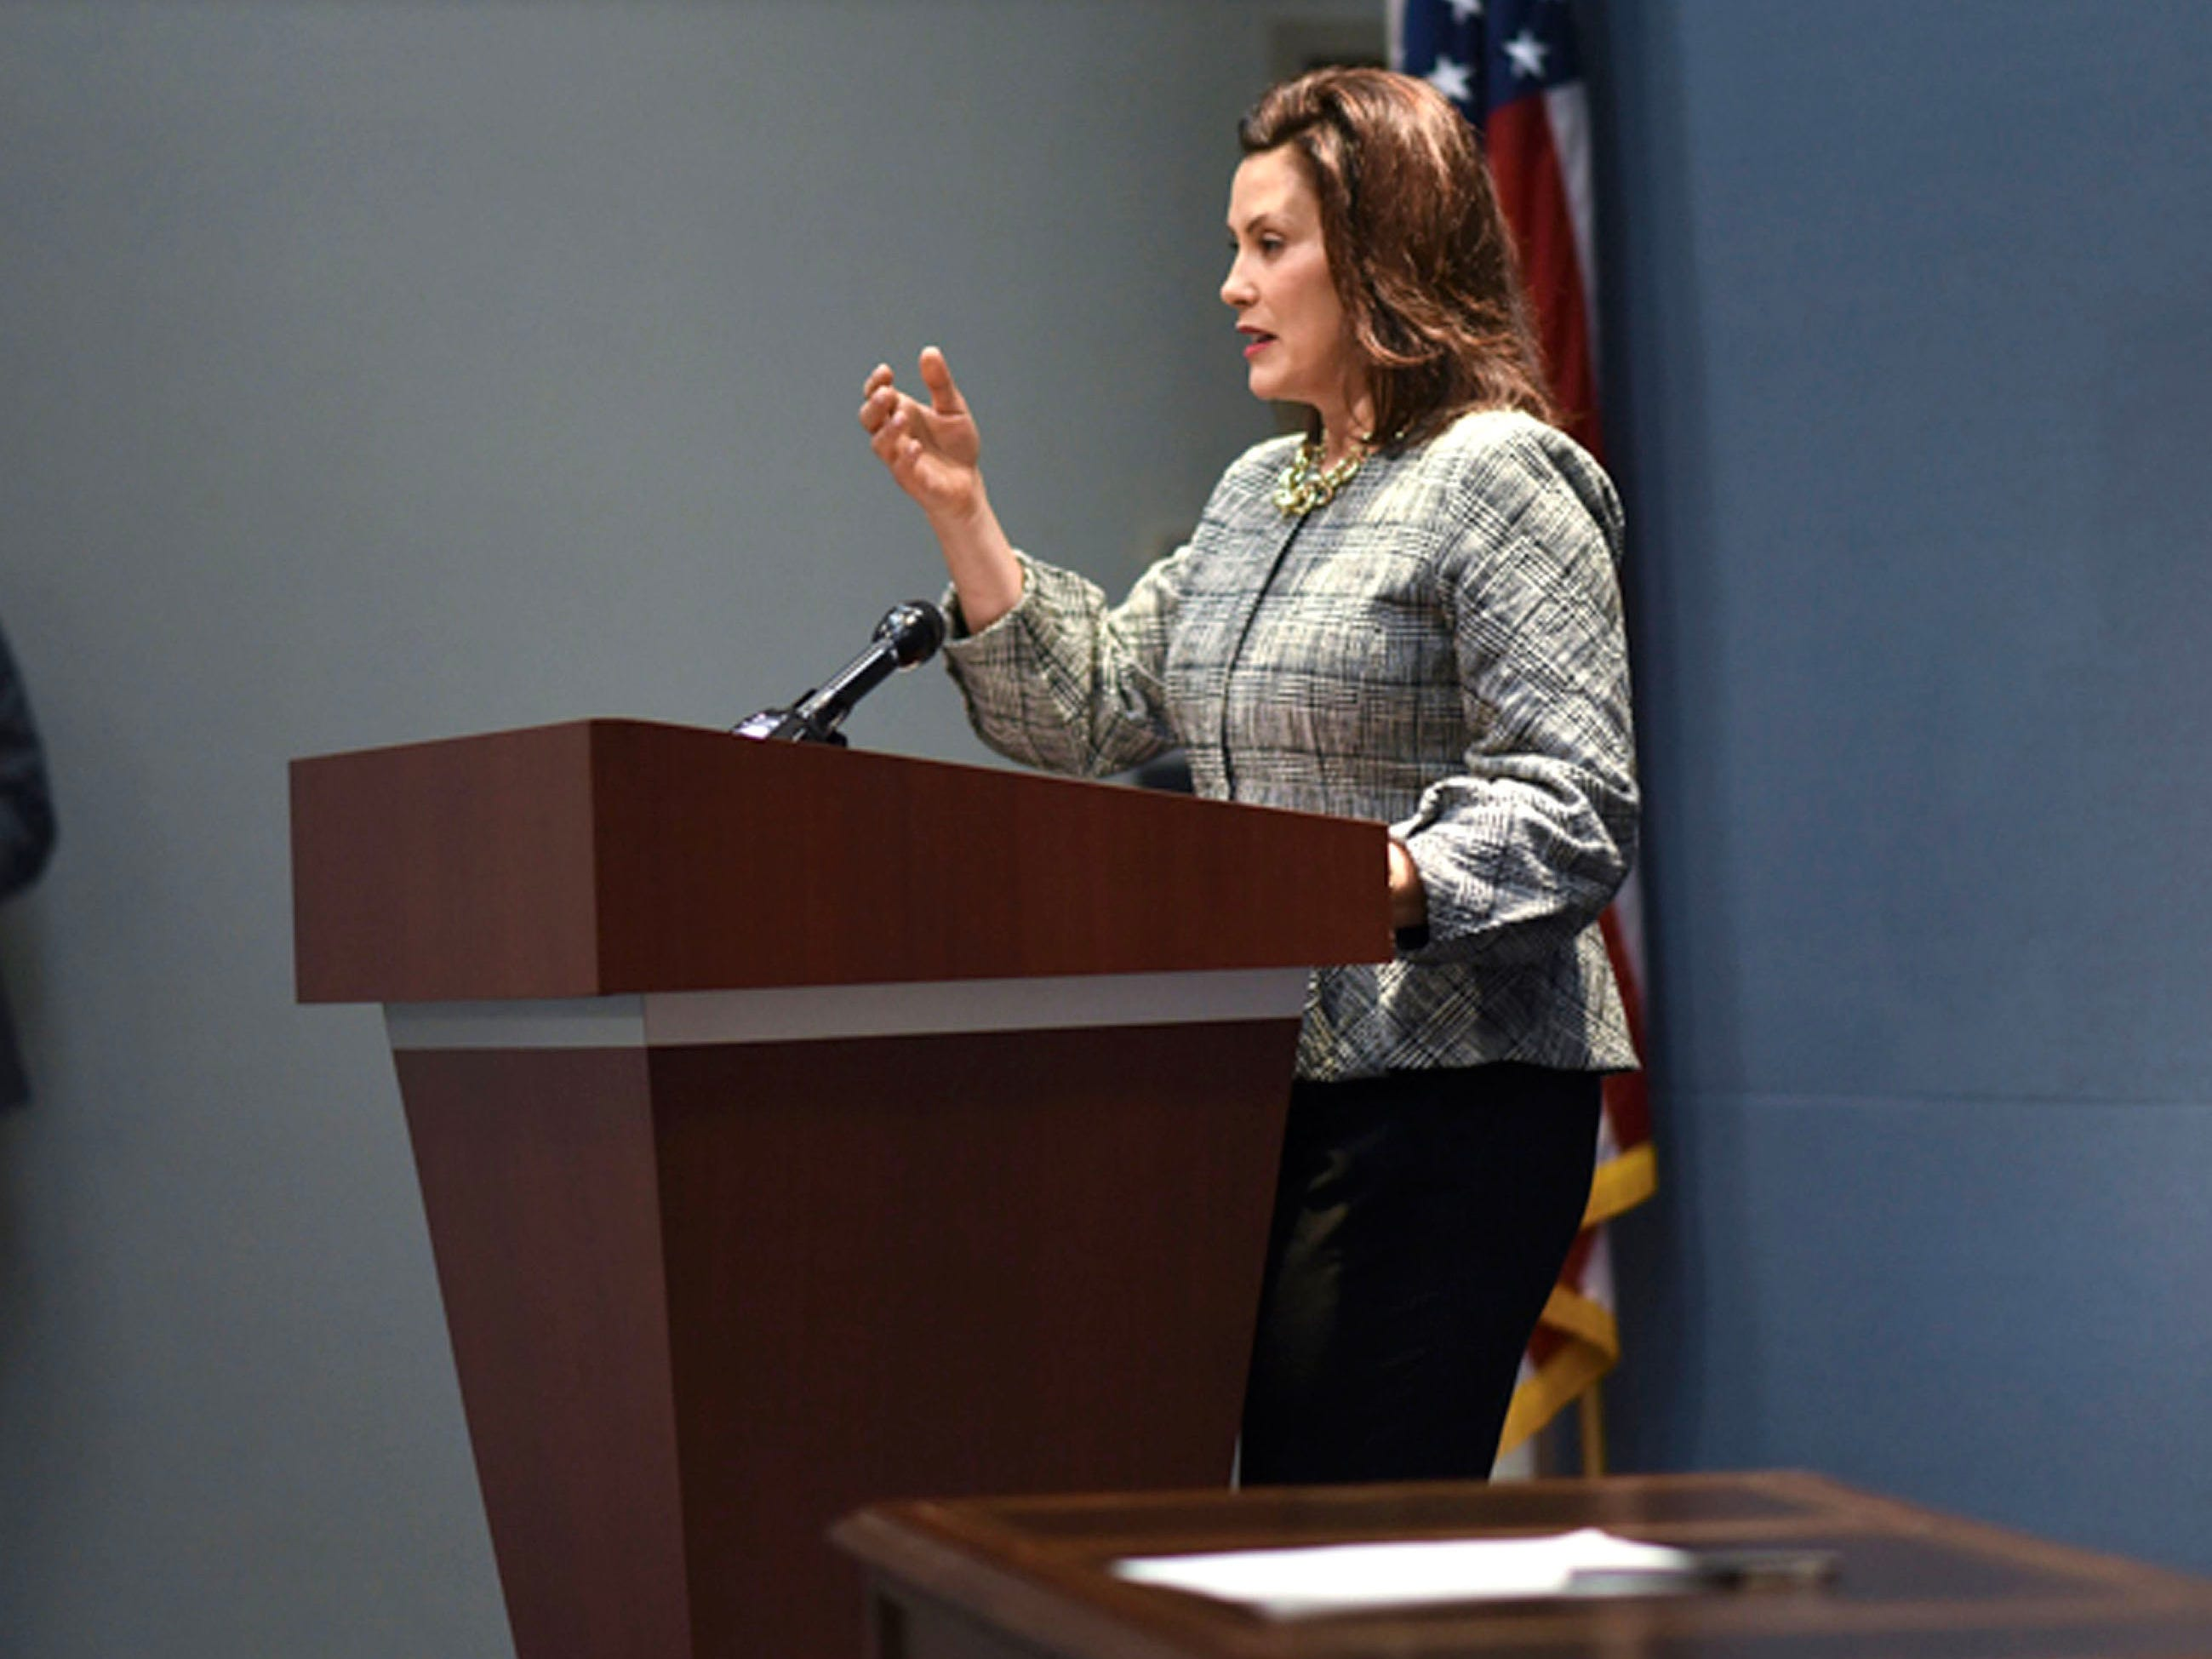 Whitmer bans use of private email accounts for state business